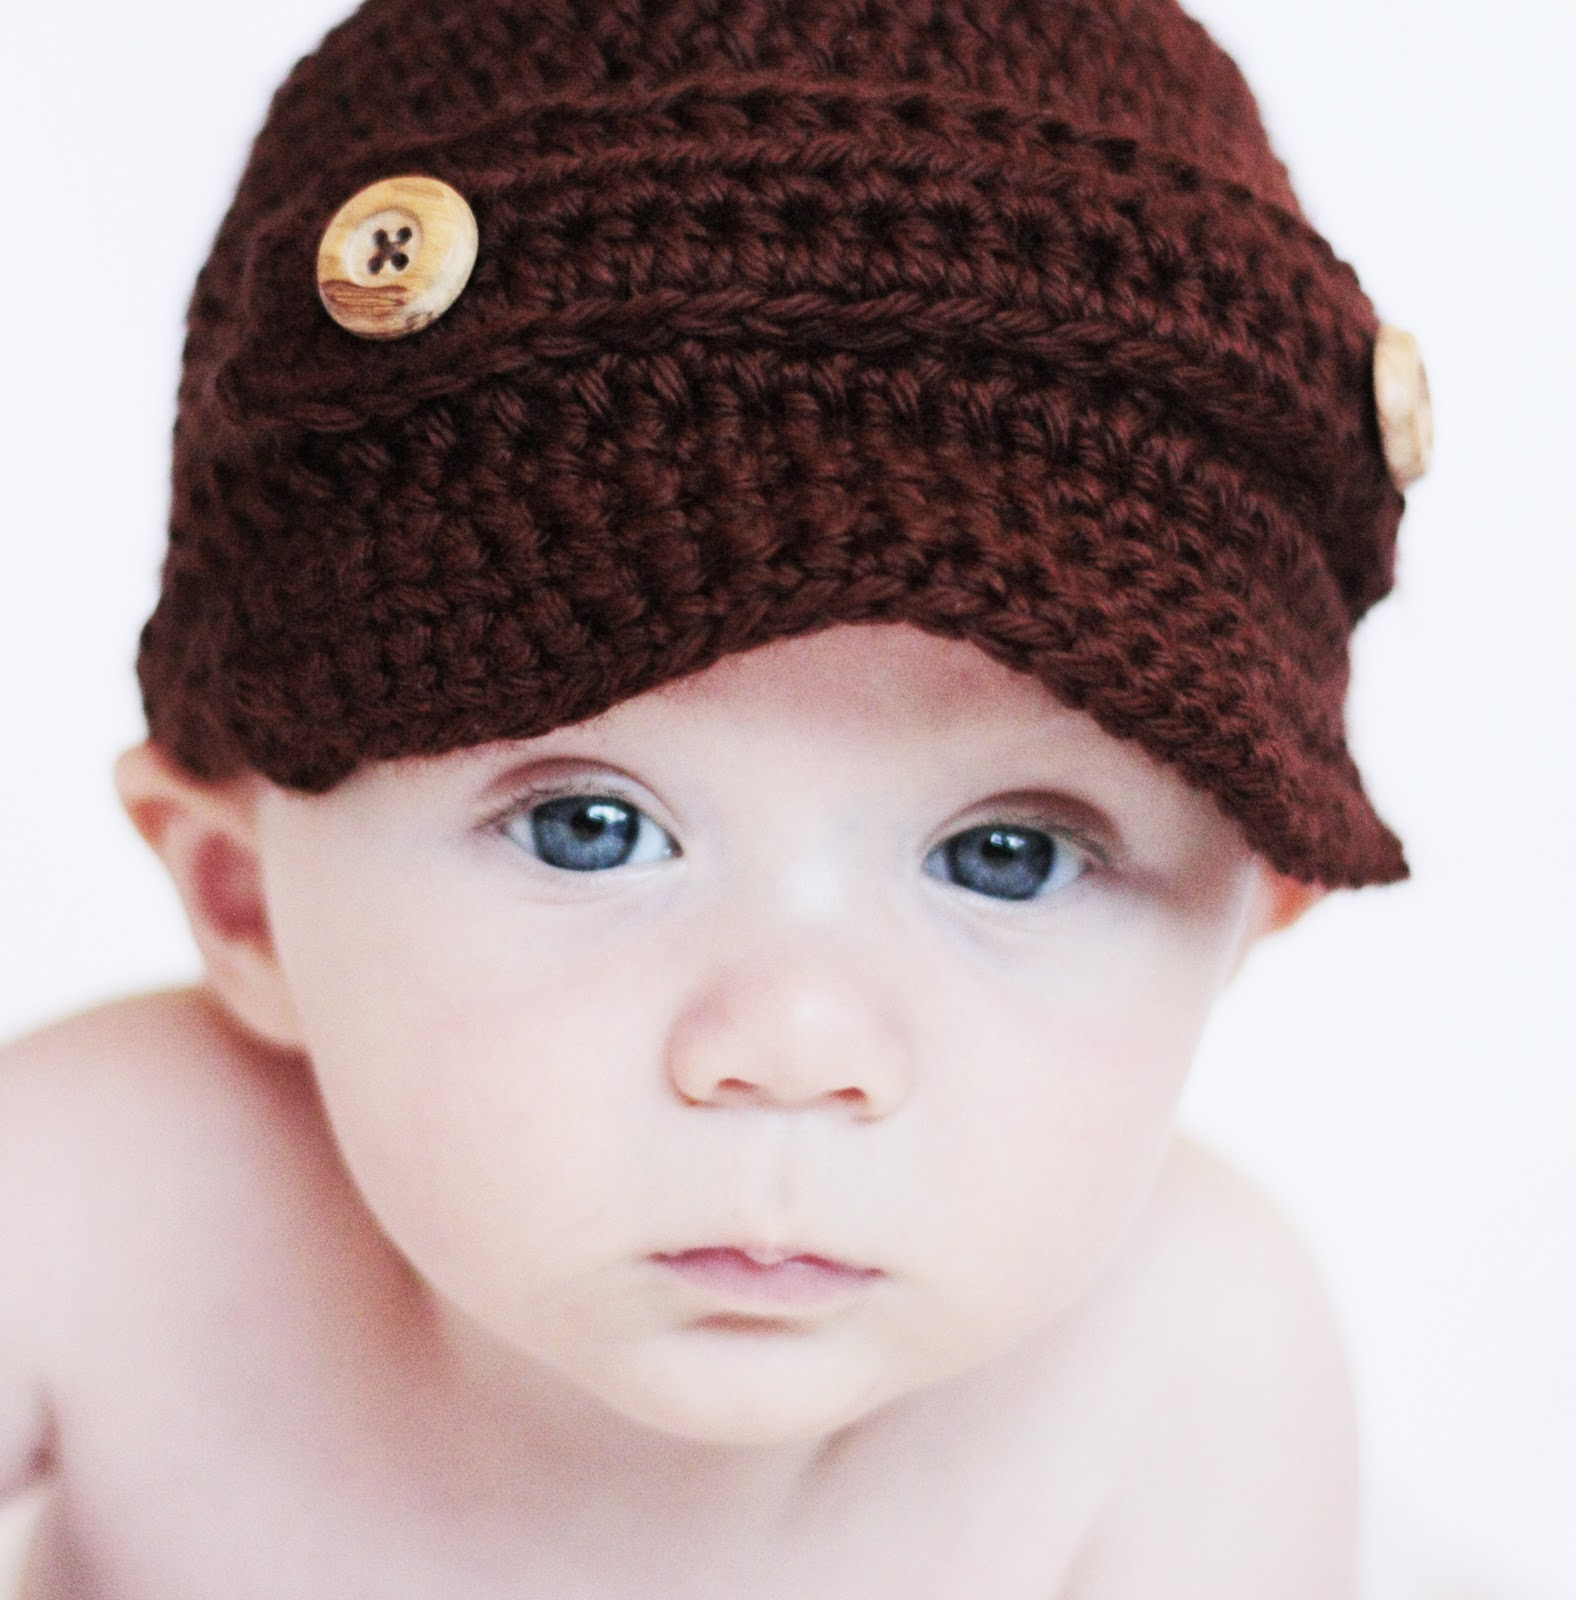 Petit lambie september 2011 newsboy hat with buttons by petit lambie bankloansurffo Images